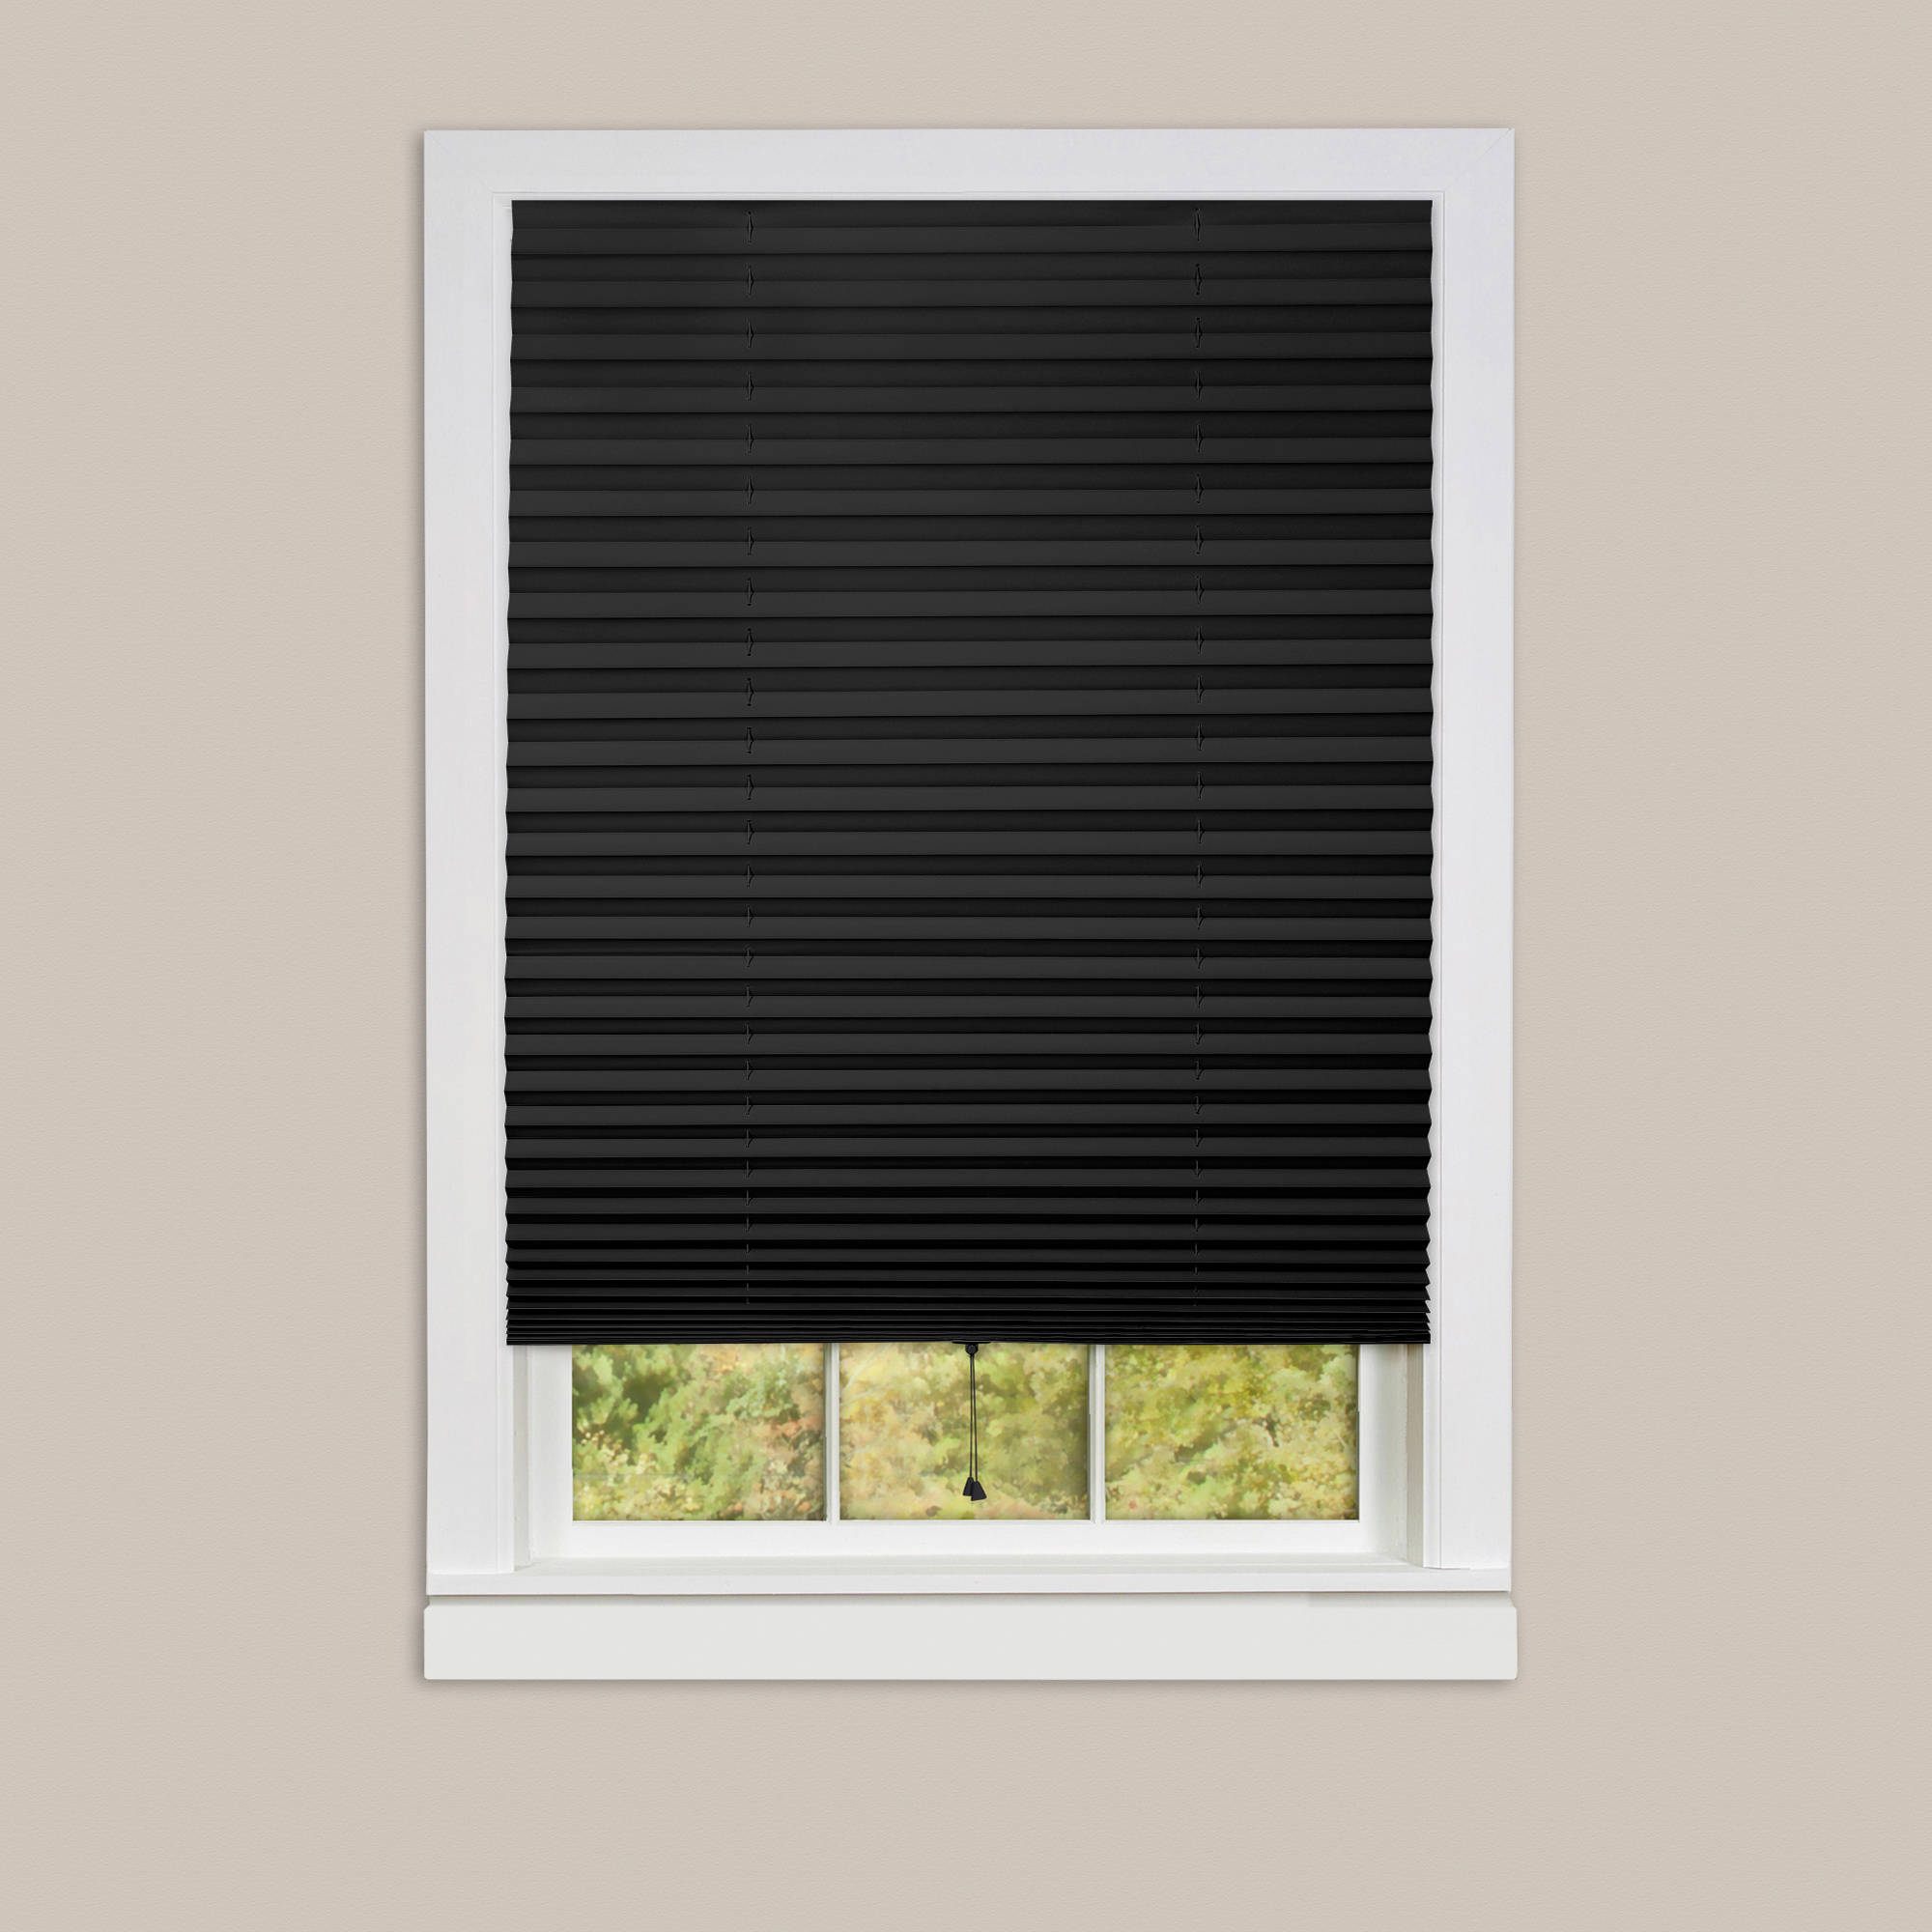 blackout blinds 1-2-3 vinyl room darkening temporary pleated window shade JHDKTRH